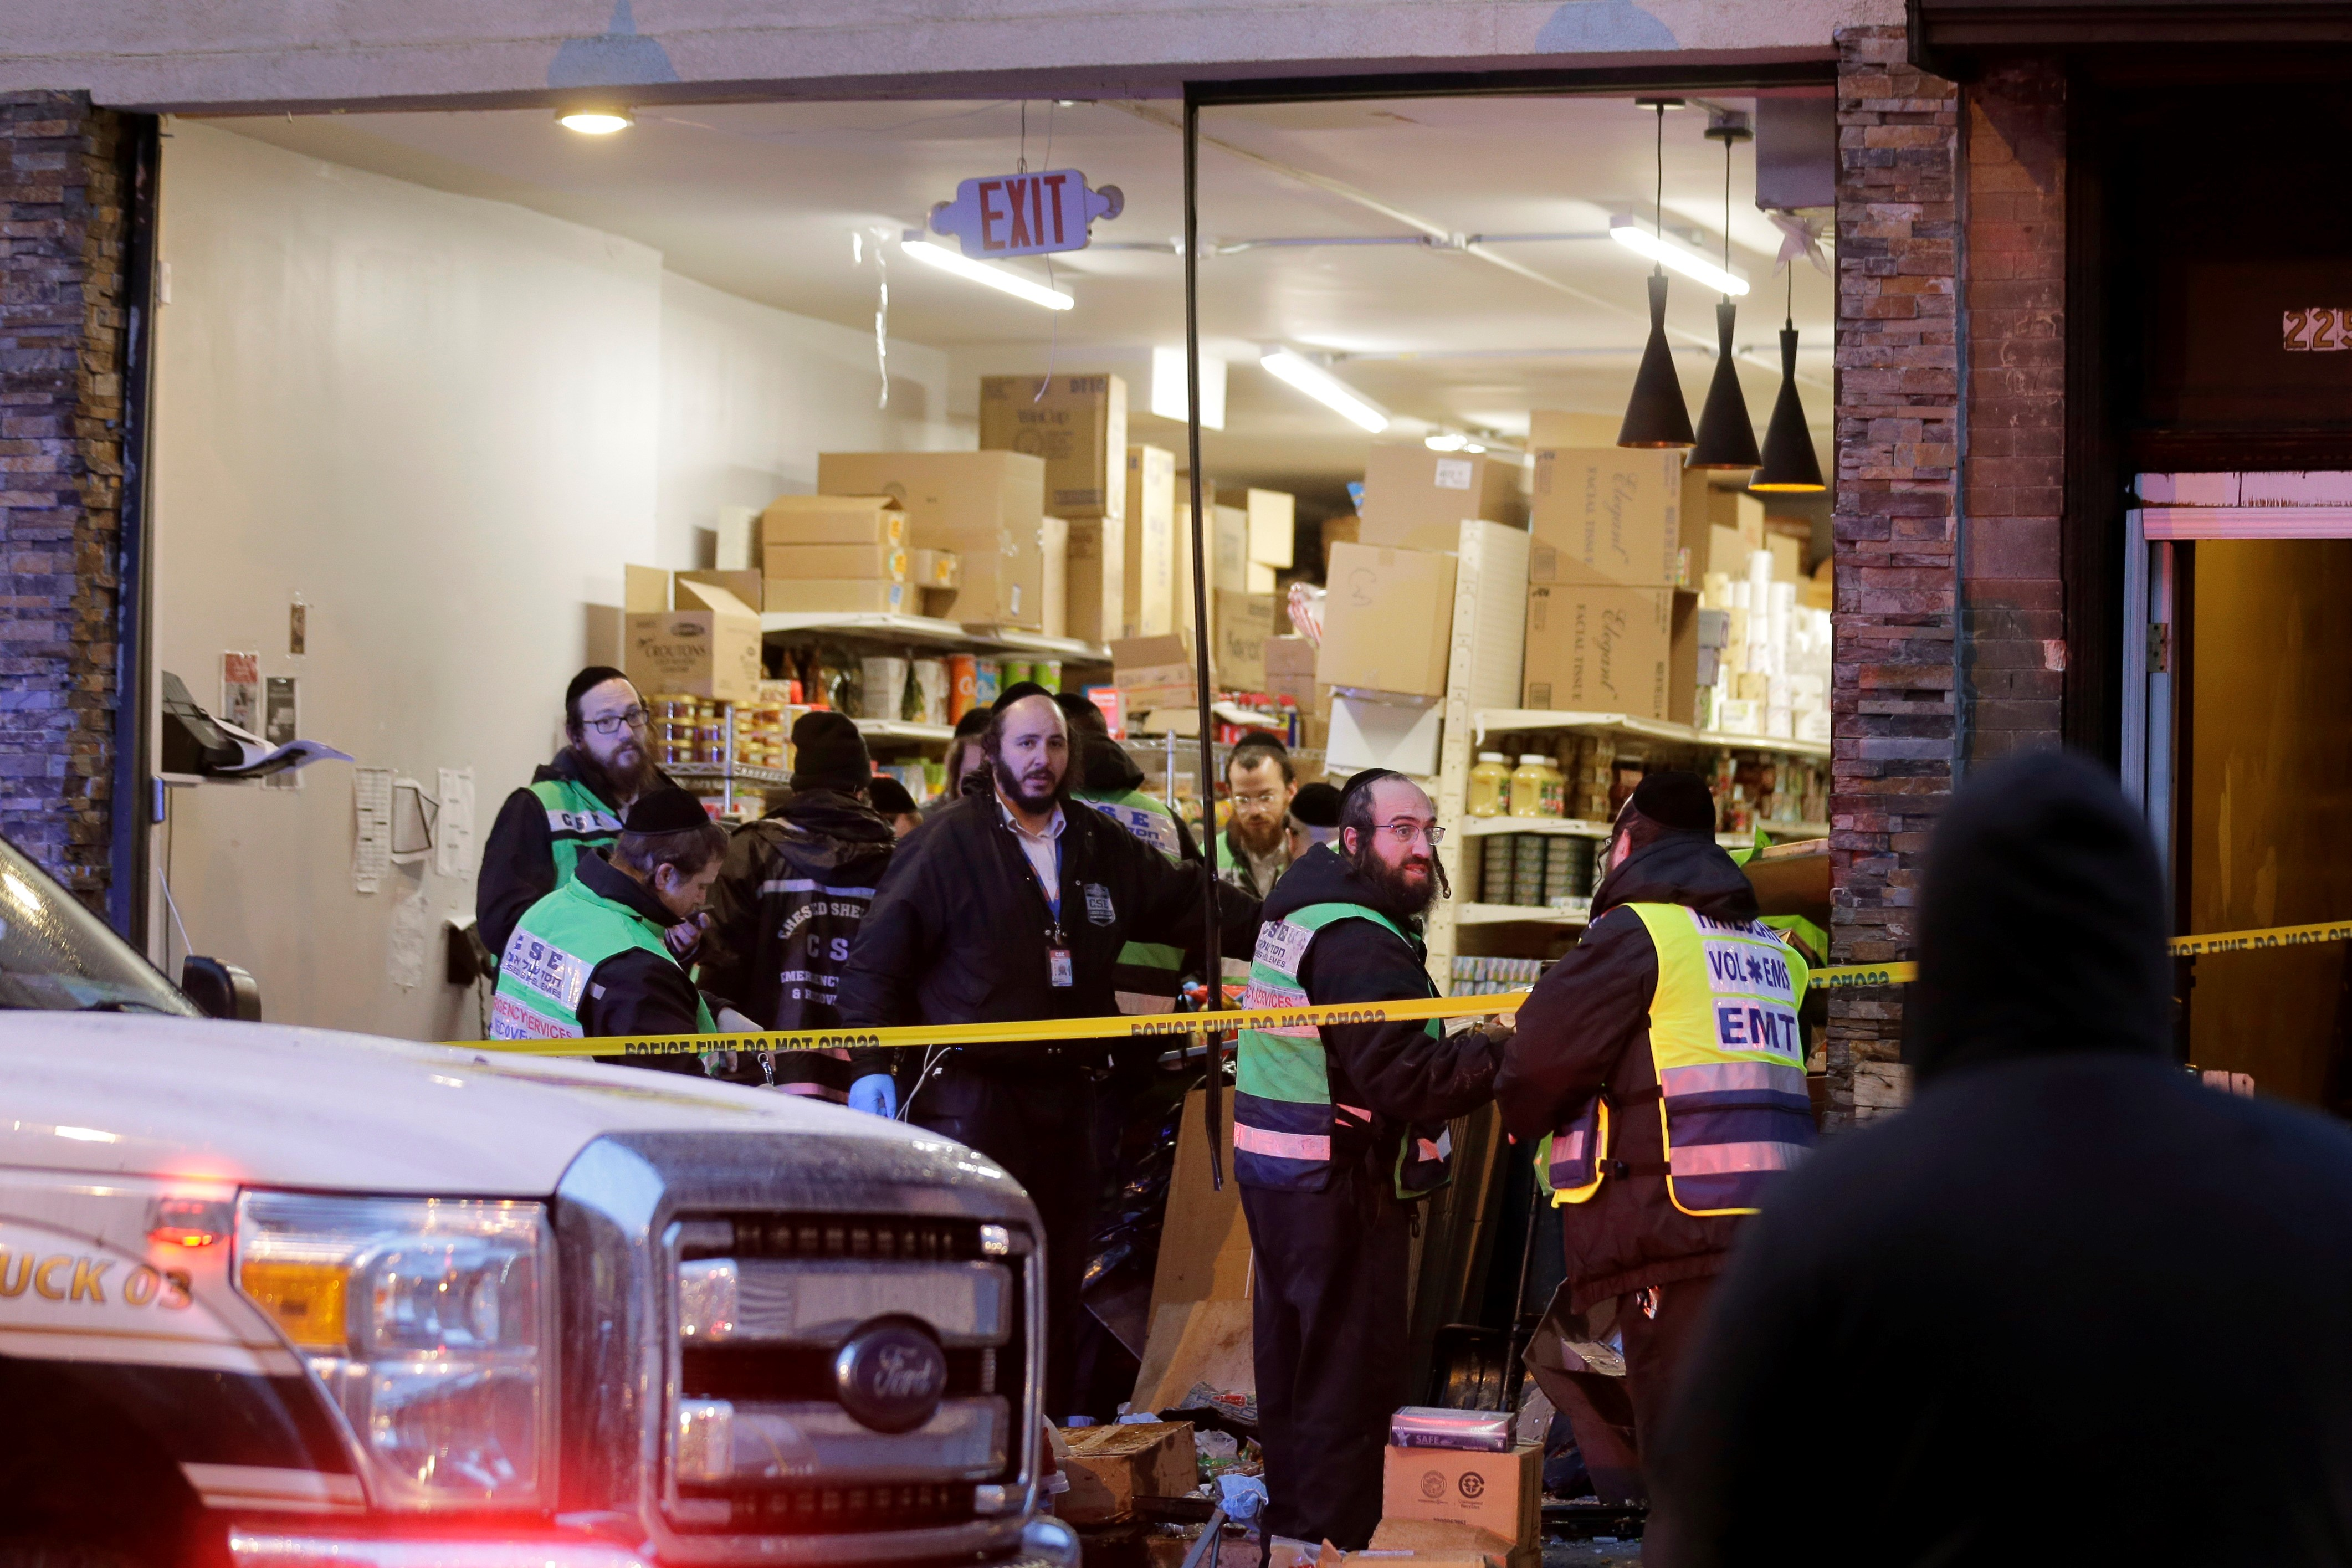 First responders in Jersey City, NJ, after two anti-Semitic killers assaulted a kosher market, murdering three Jews and a police detective. The incident is a violent manifestation of increasing attacks against Jews—often linked to hatred of Israel. Jews are already the most targeted group for hate crimes in the United States.